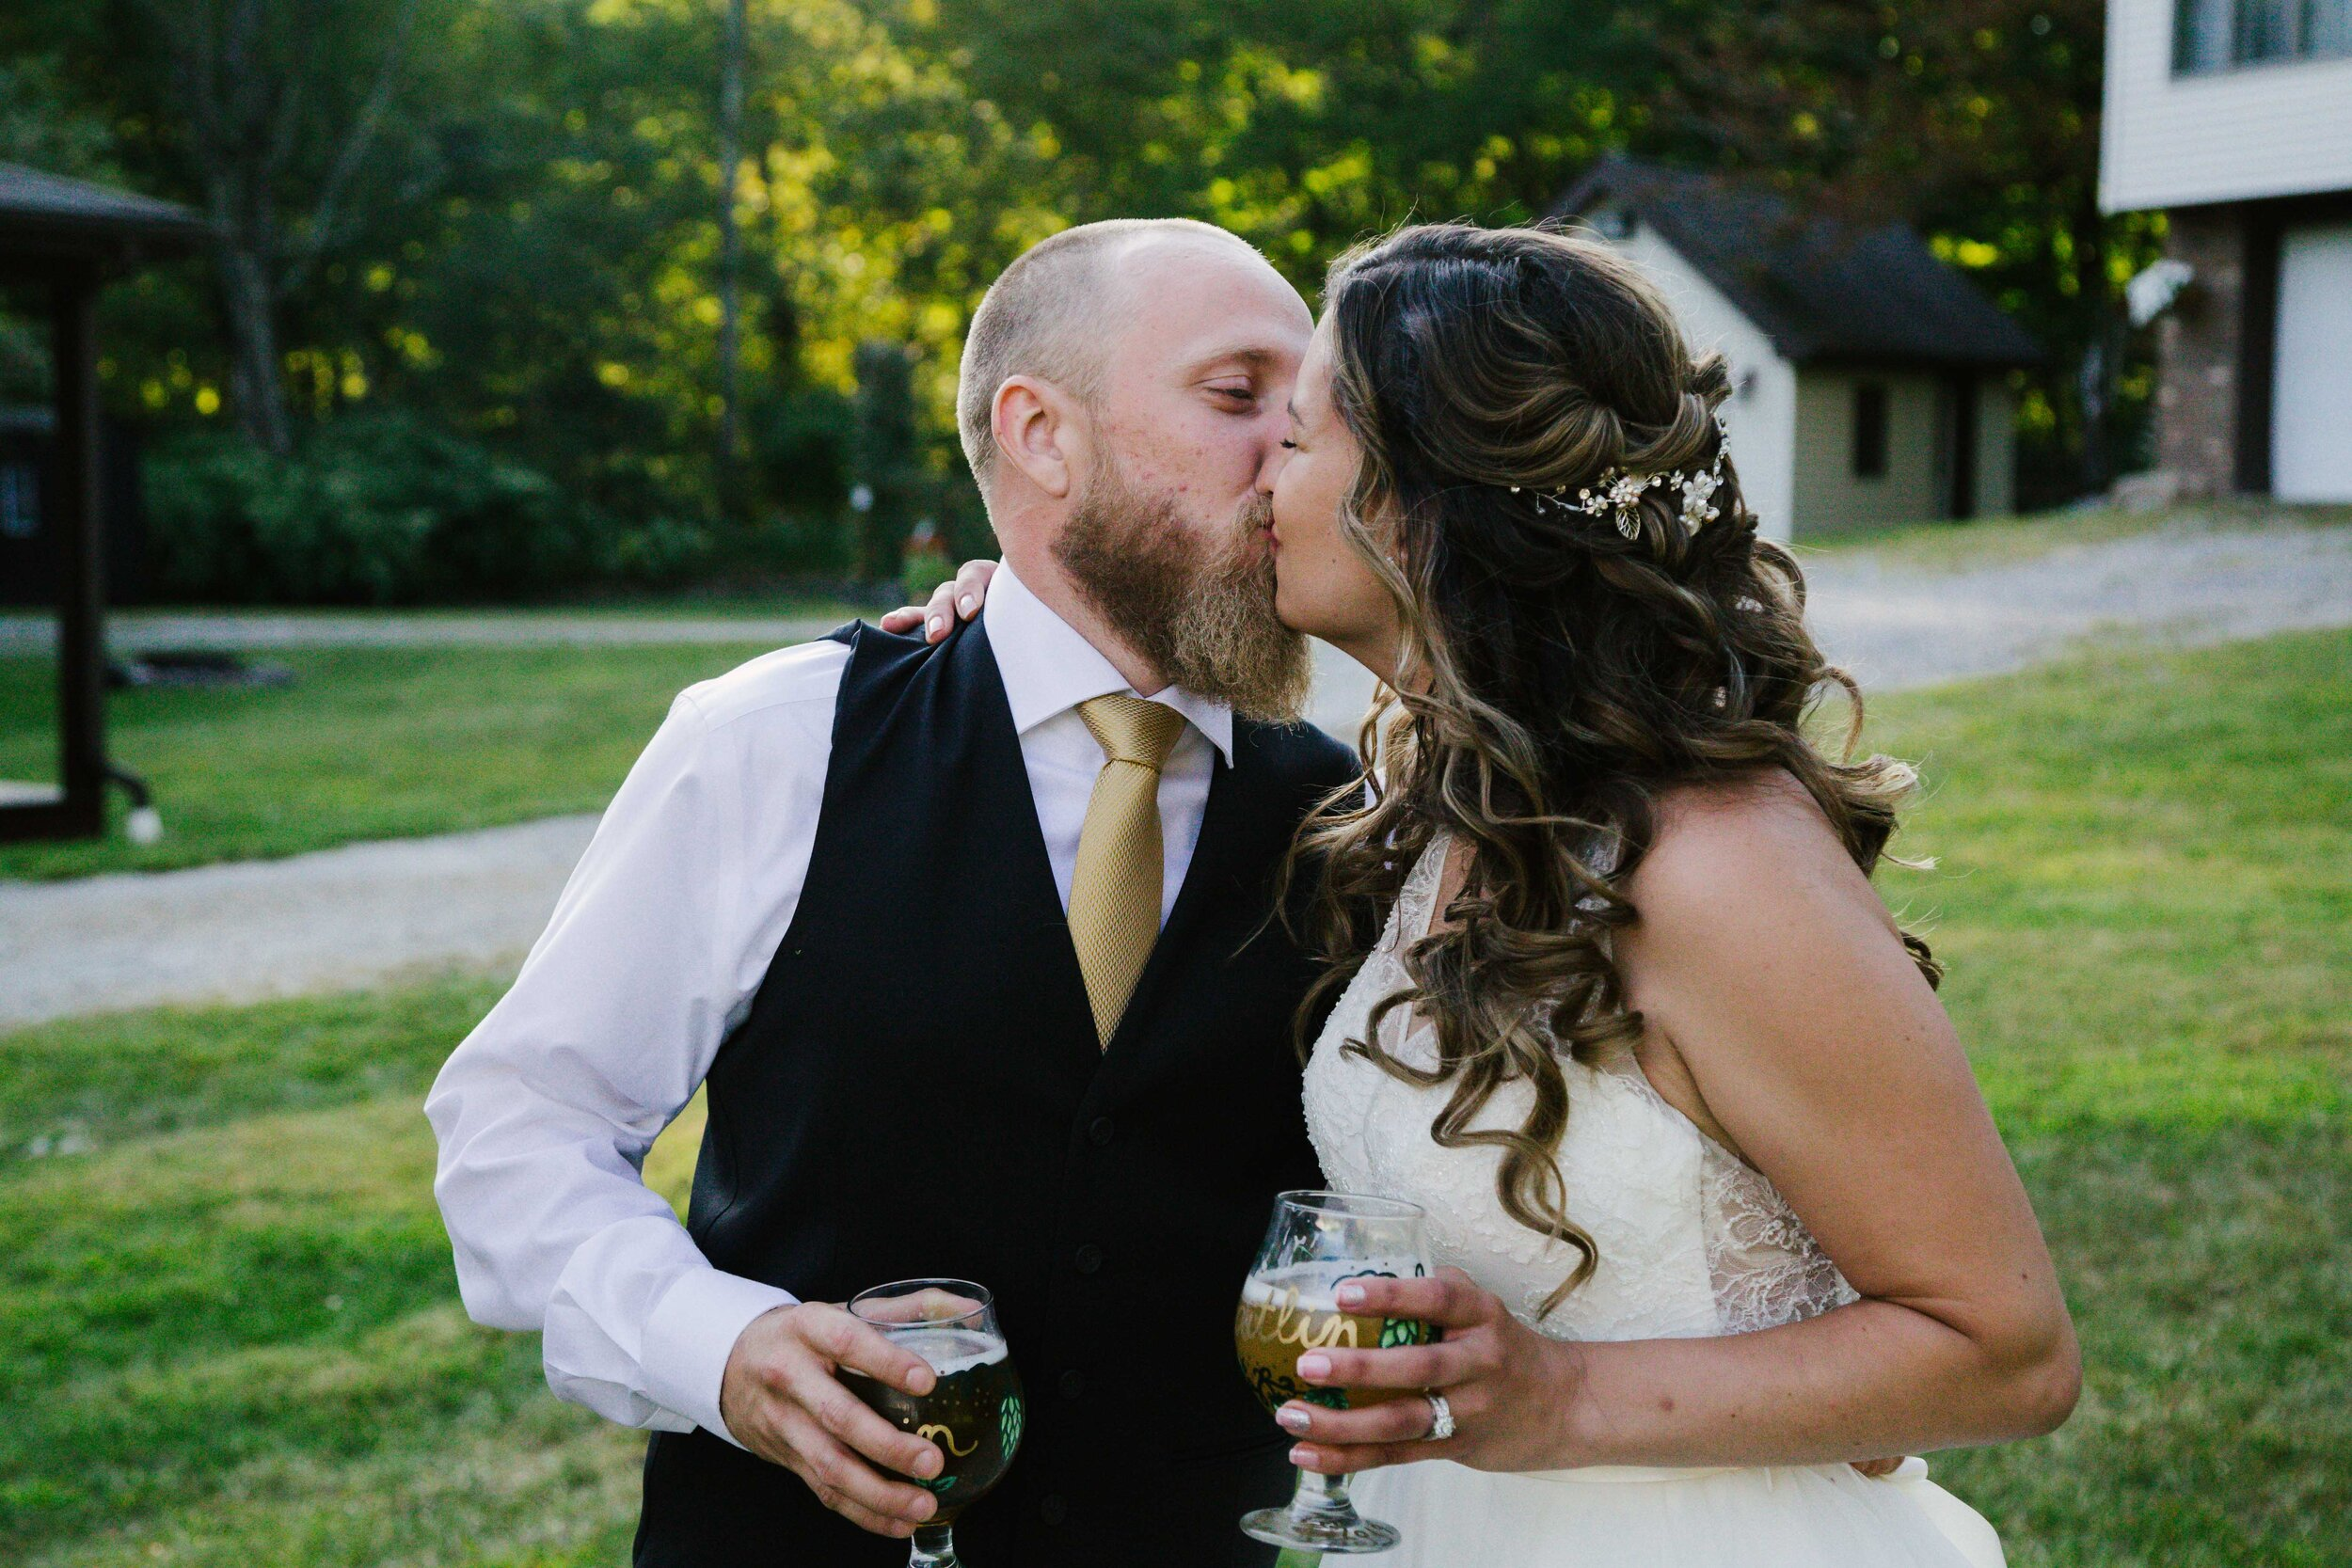 Backyard Homebrew Wedding in Branchville NJ by Dan Schenker Photography-49.jpg